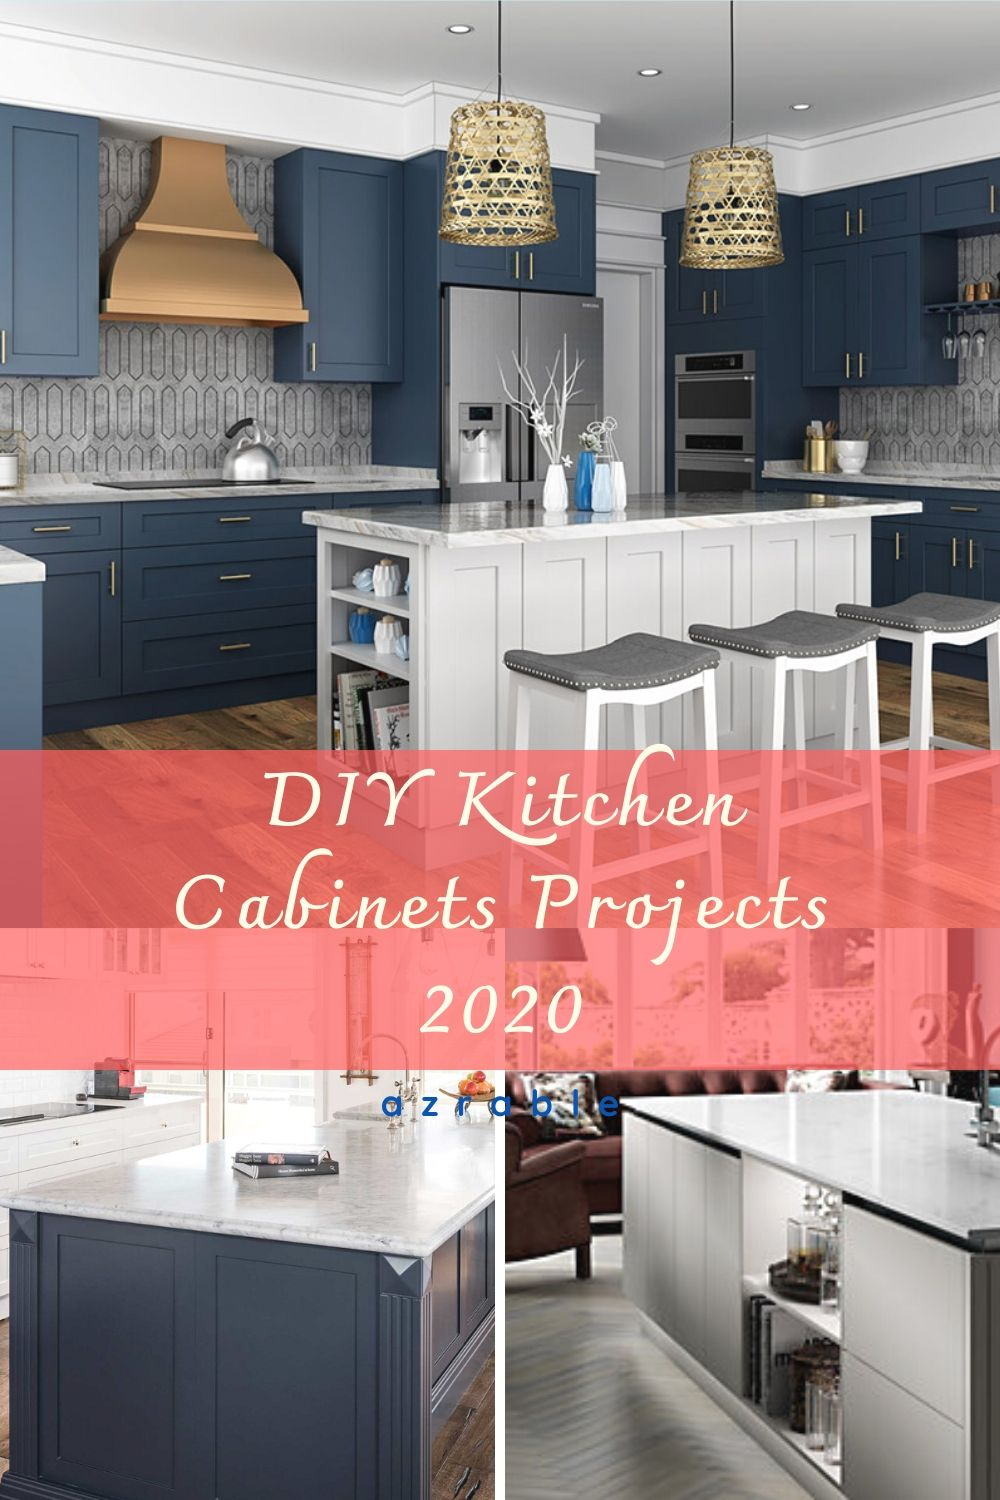 Diy Kitchen Cabinets Projects In 2020 Kitchen Projects Design Diy Kitchen Decor Simple Kitchen Design